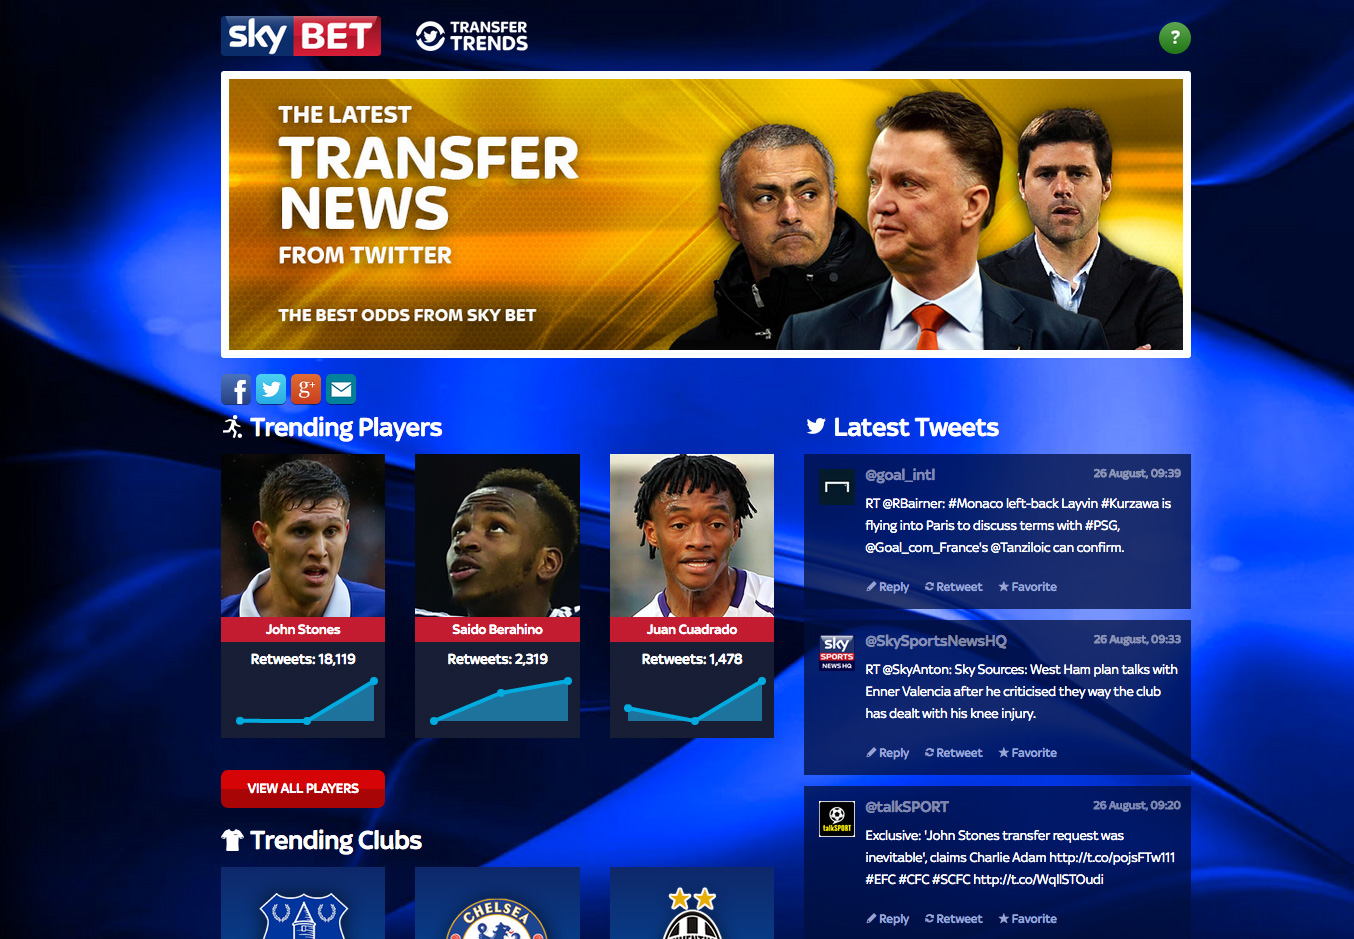 skybet-transfer-trends